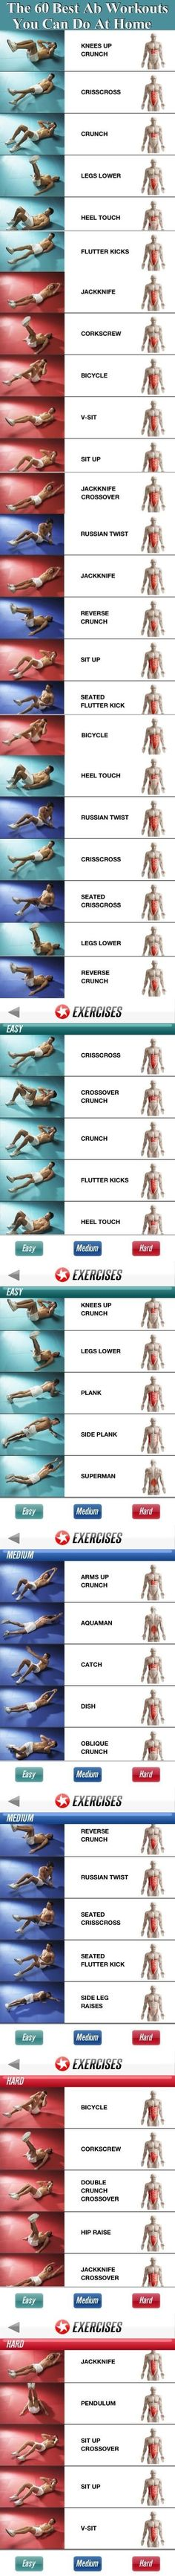 best Running images on Pinterest Daily exercise Abdominal